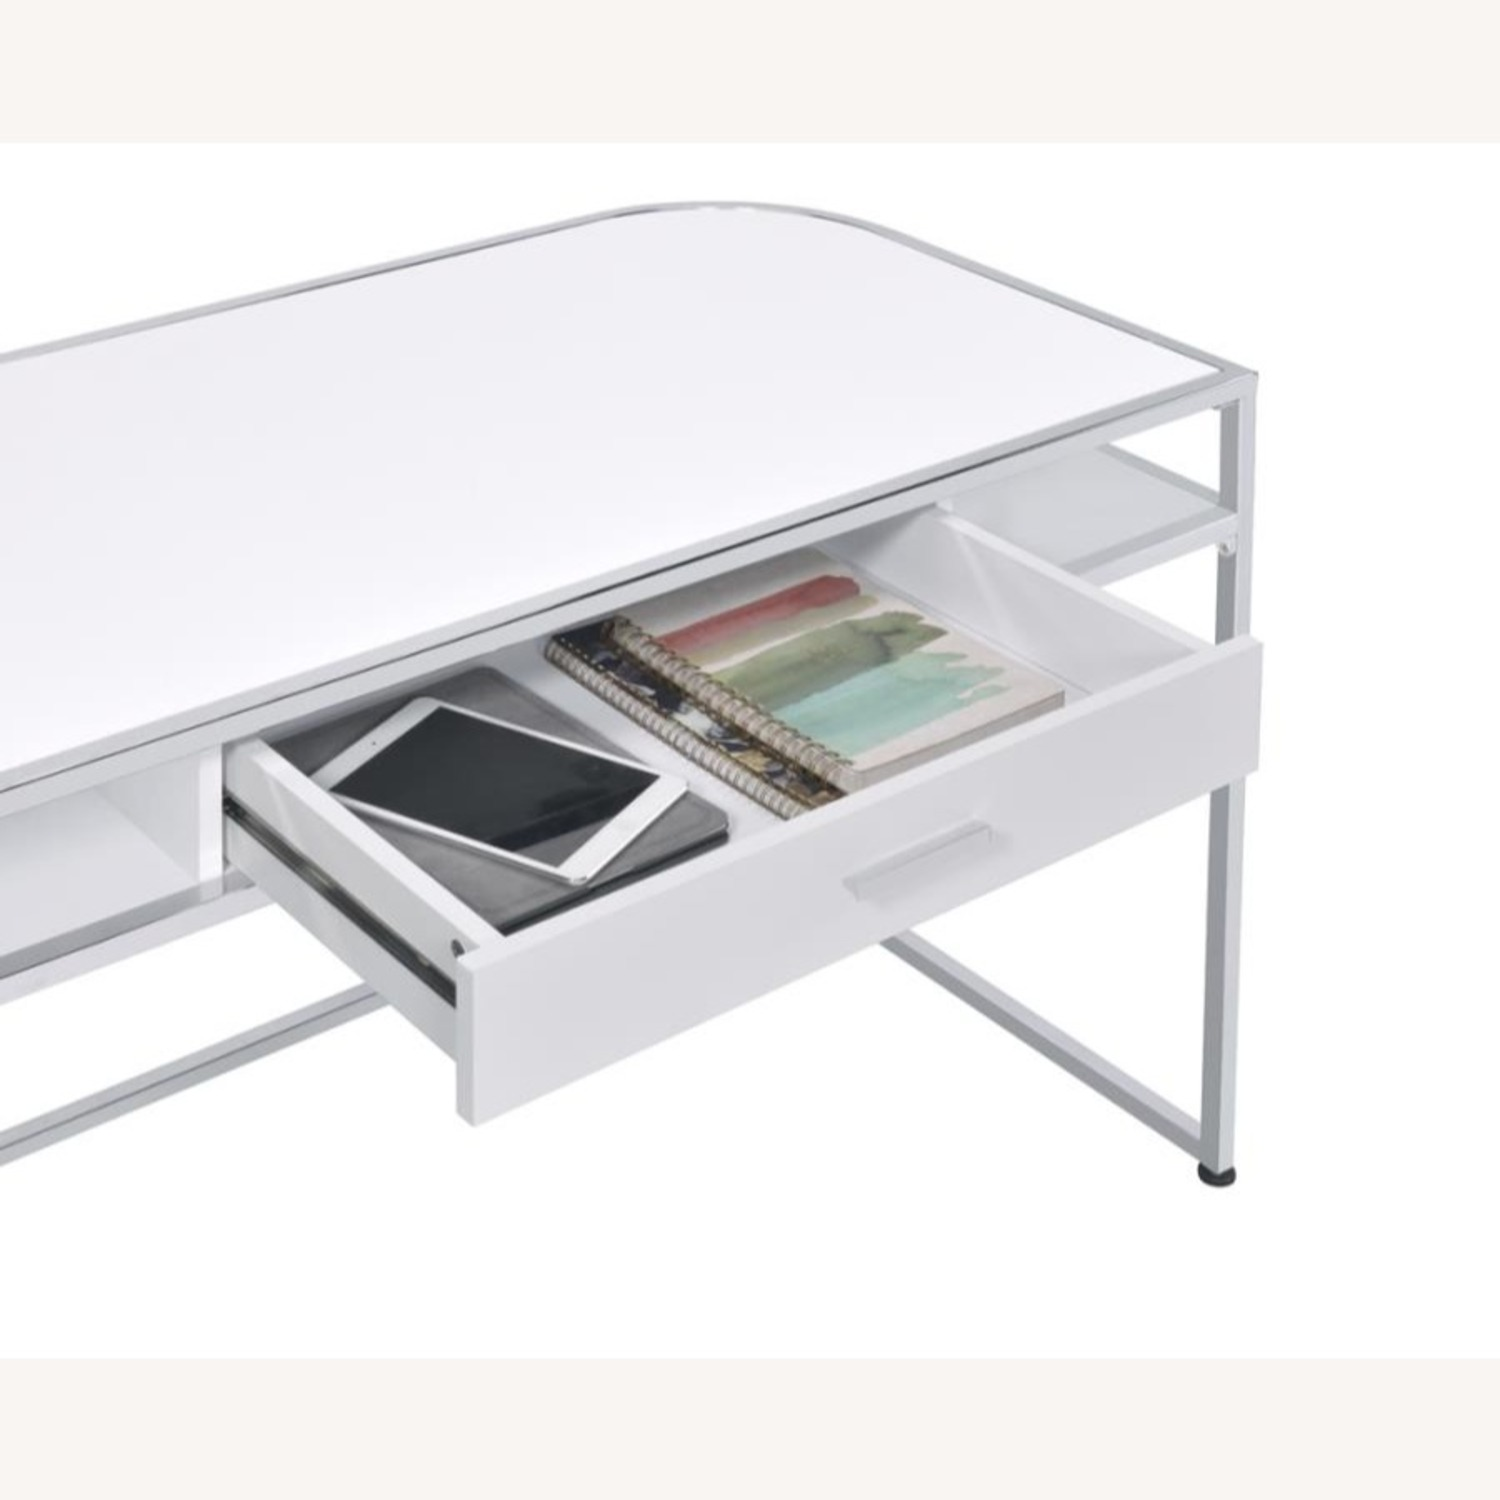 Writing Desk In White High Gloss Lacquer Finish - image-3